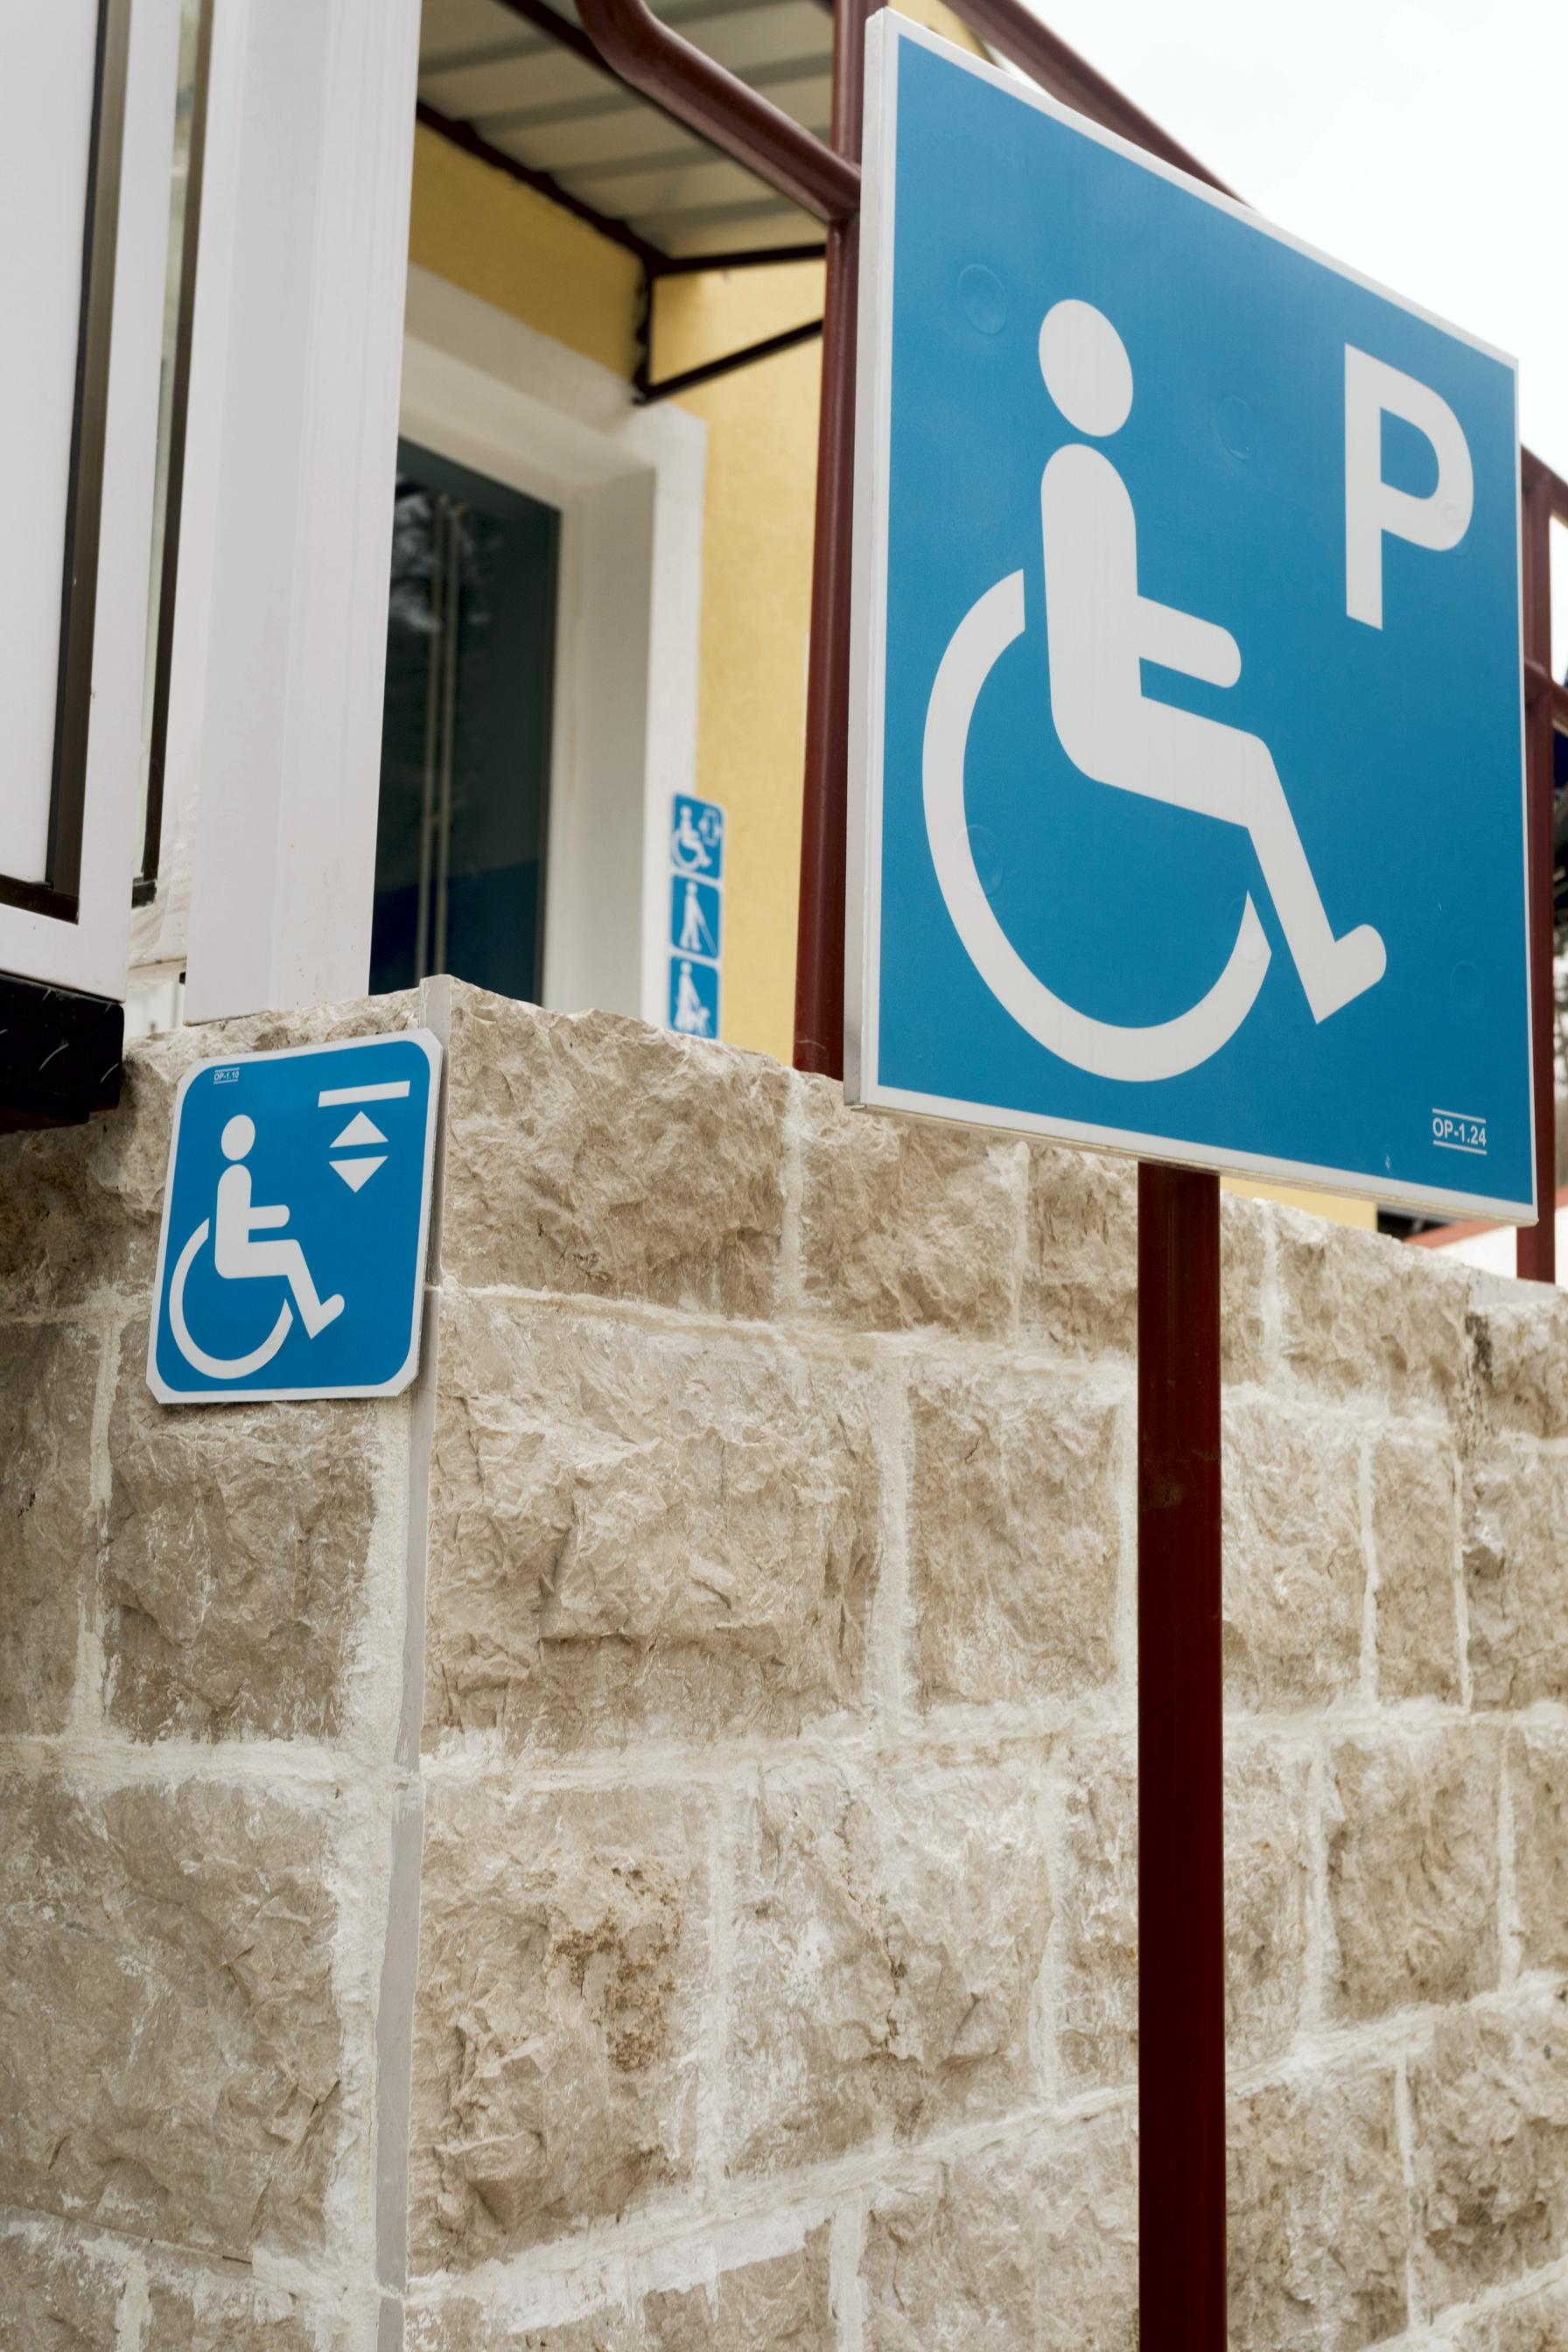 Accessibility signs Alu